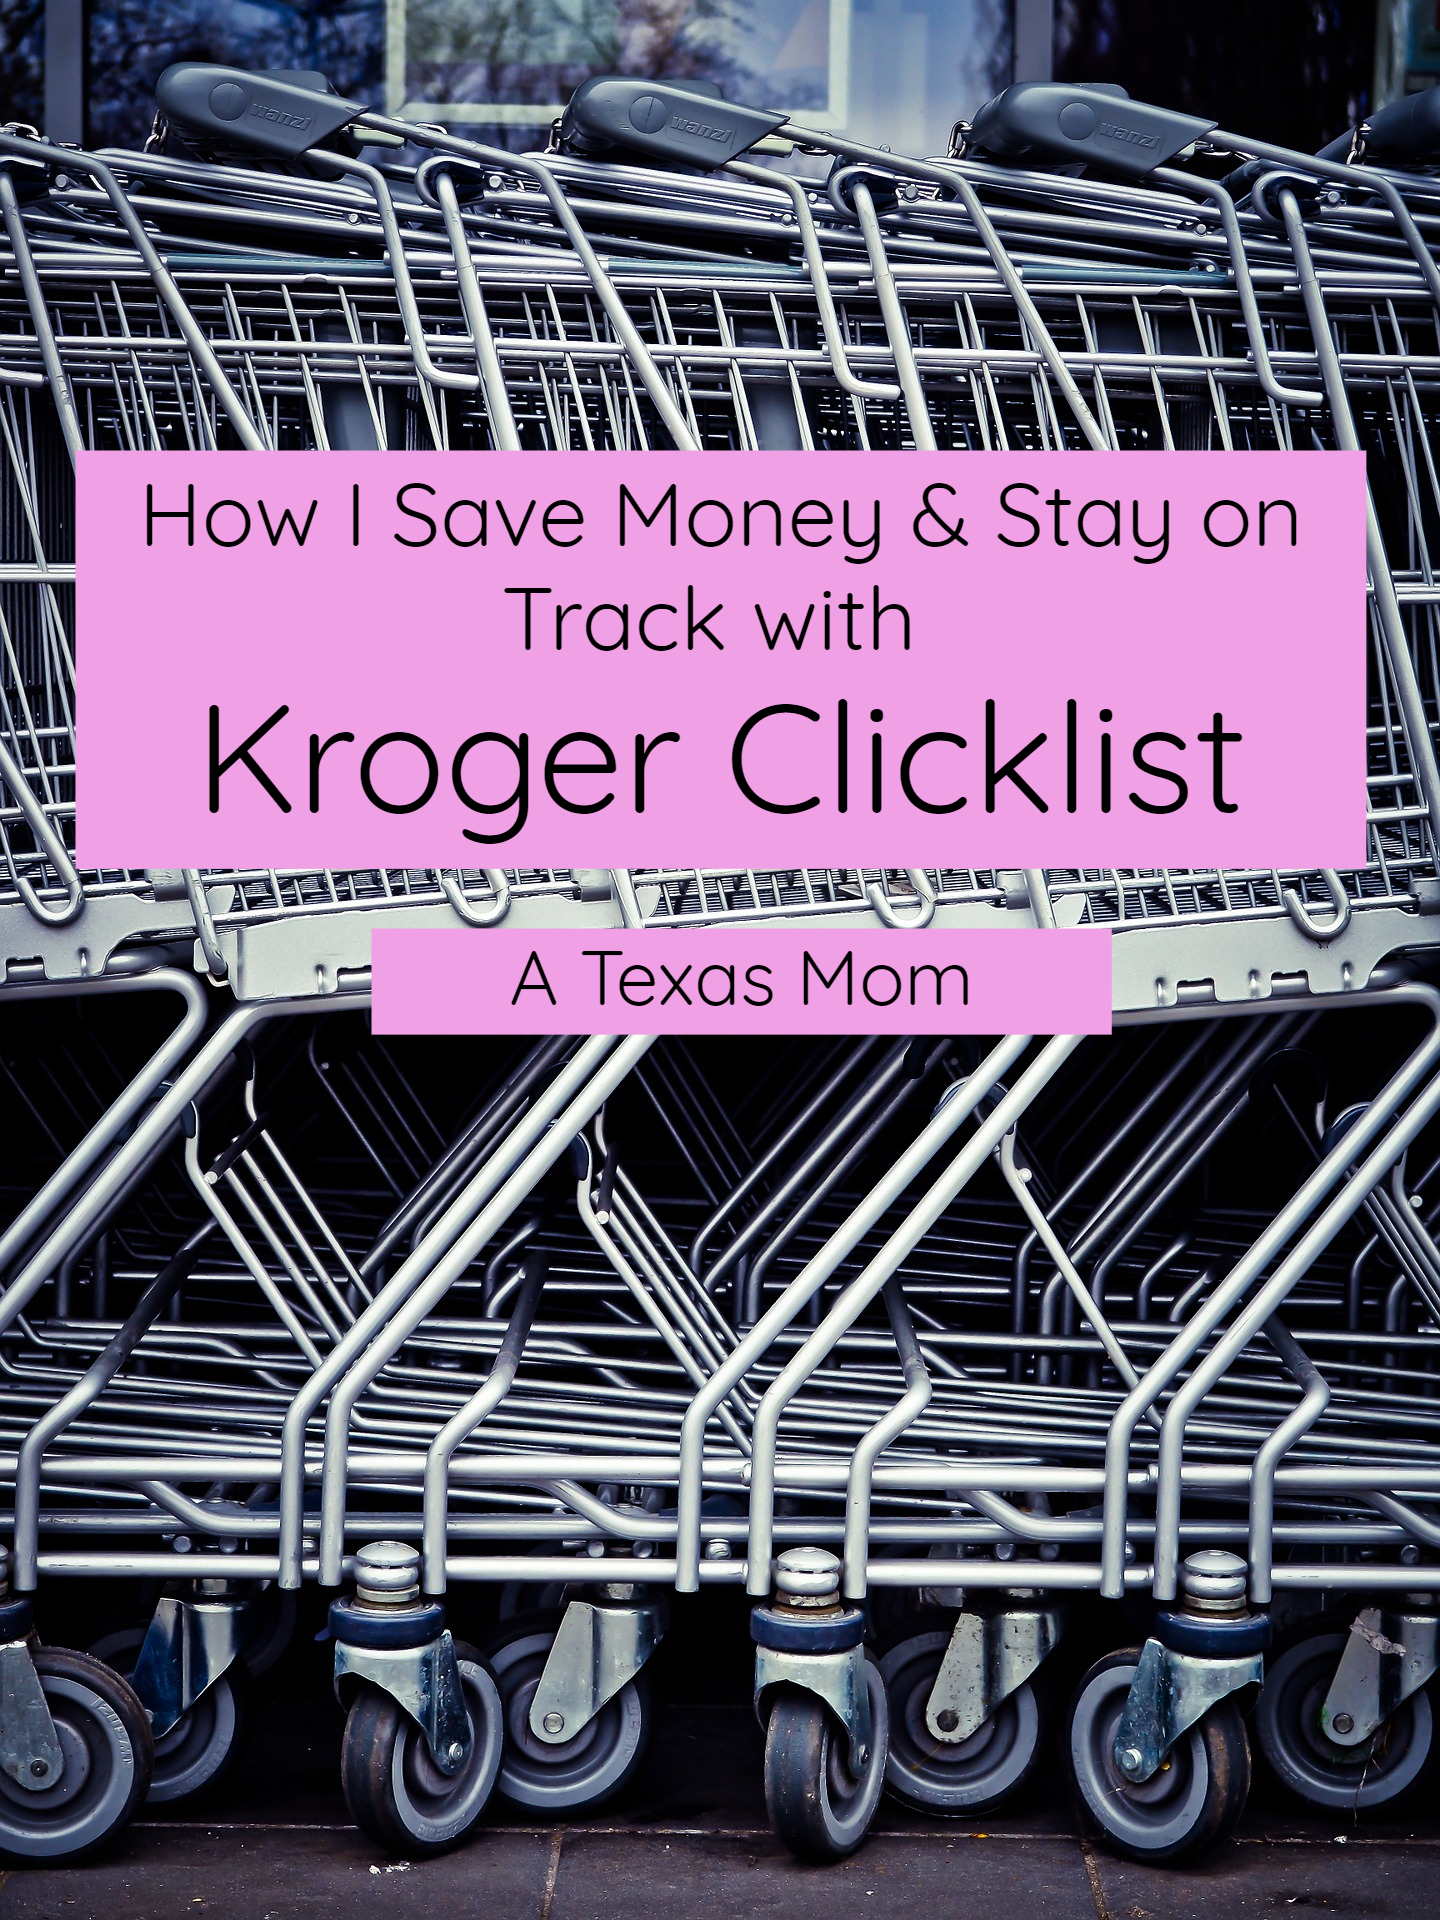 How I save money using Kroger Clicklist #ATexasMom